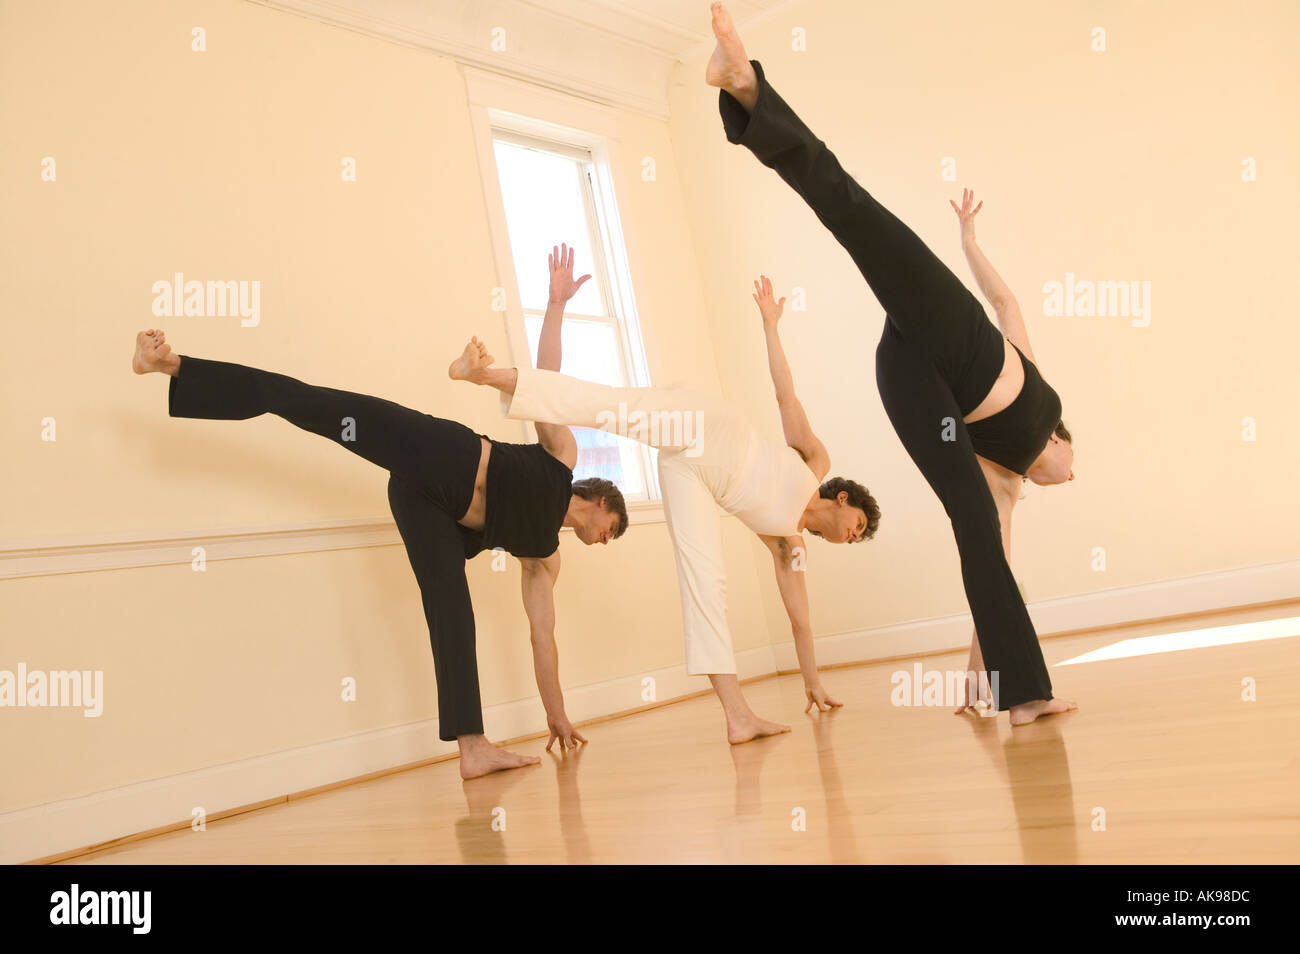 Yoga Studio 1 - Stock Image